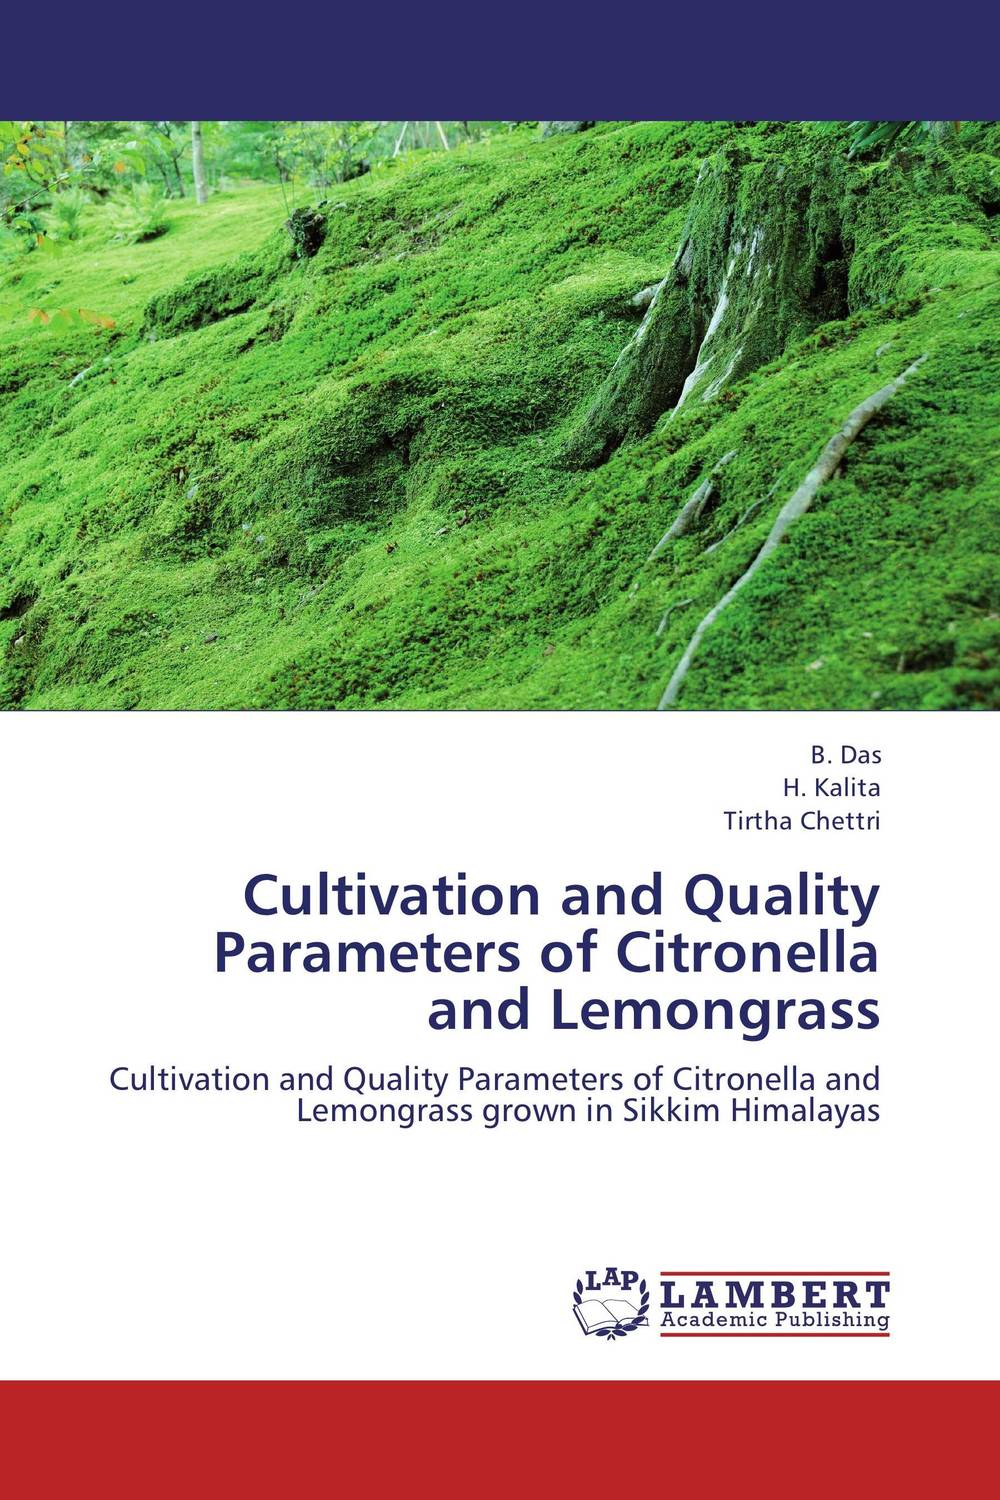 Фото Cultivation and Quality Parameters of Citronella and Lemongrass cervical cancer in amhara region in ethiopia